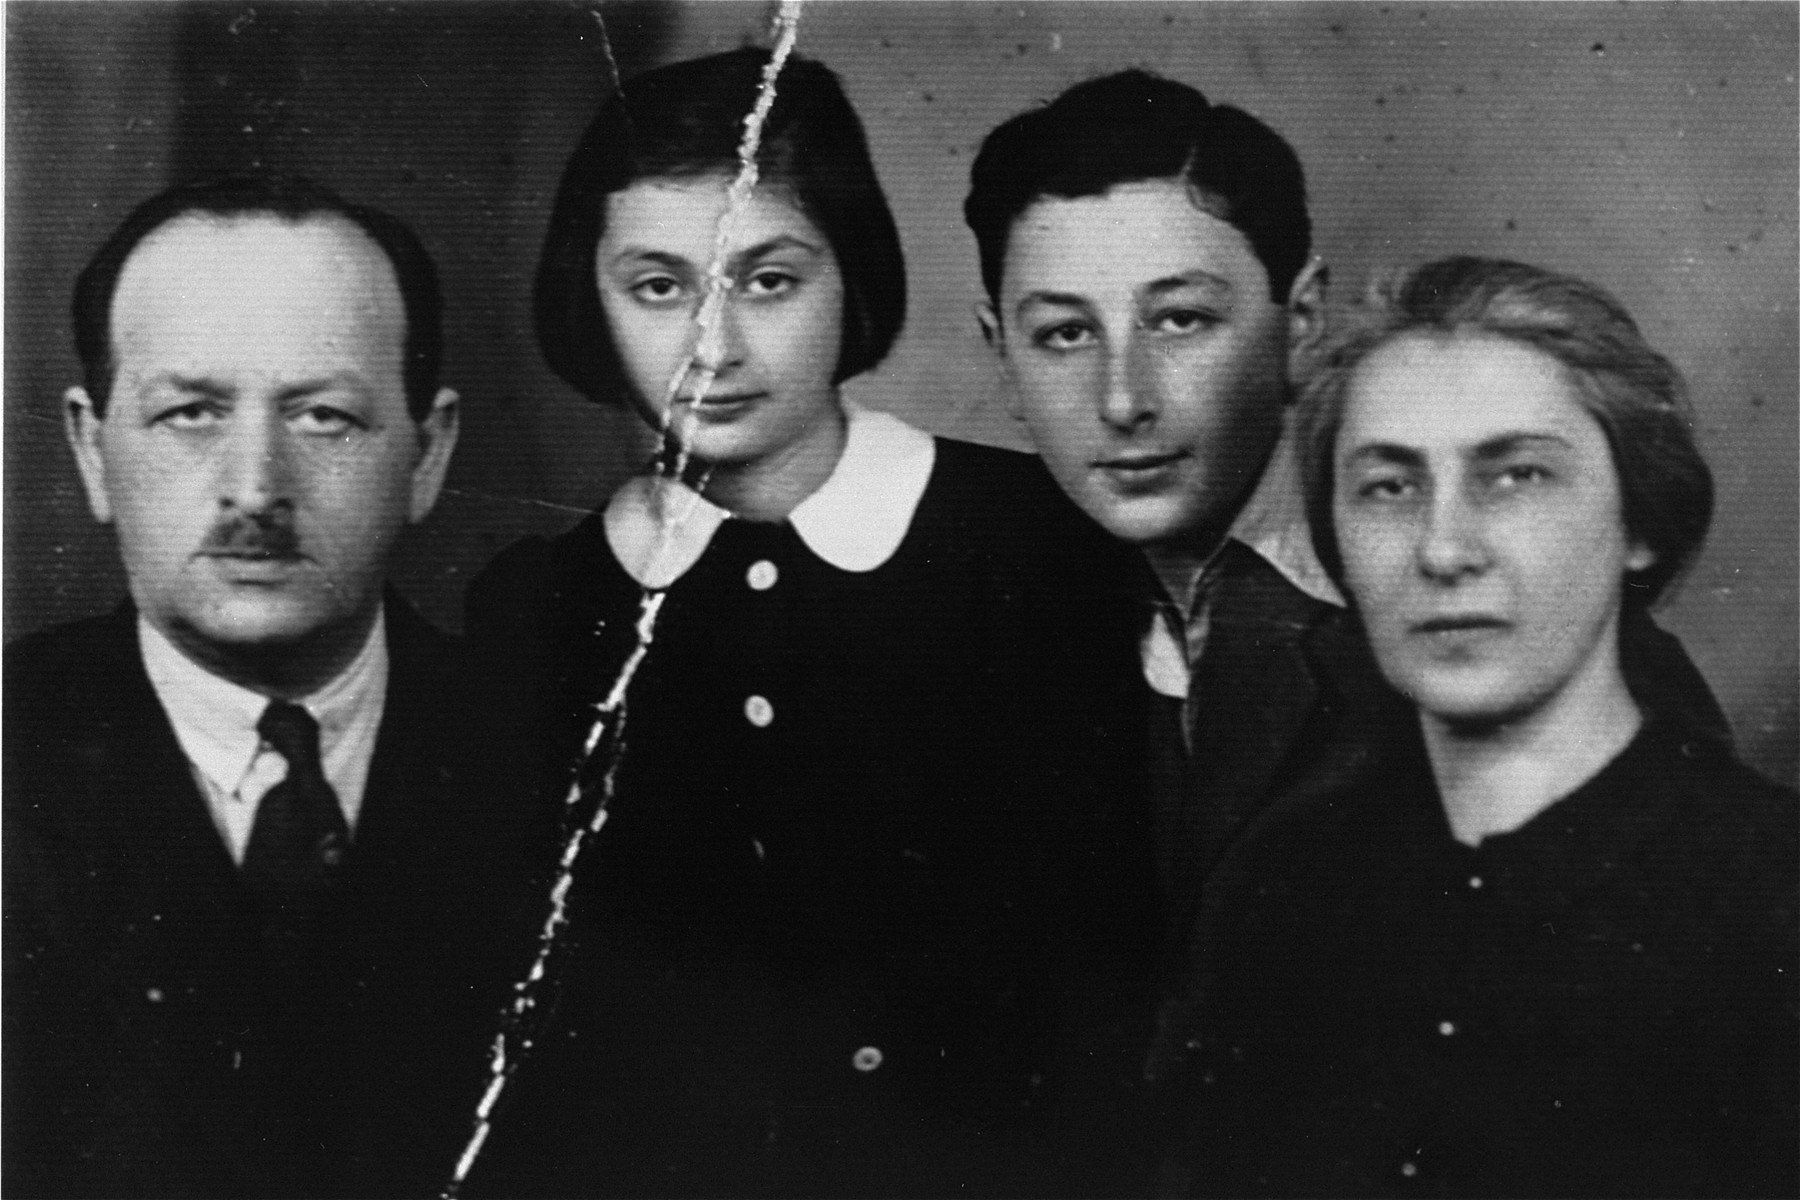 Passport photo of the Rozenman family, prepared in the Warsaw ghetto for a possiblity of an escape.    Pictured from right to left: Regina Renia, the donor's mother; Ryszard, donor's brother; Bianka, the donor and Pawel Rozenman, donor's father.  Bianka is the only survivor.